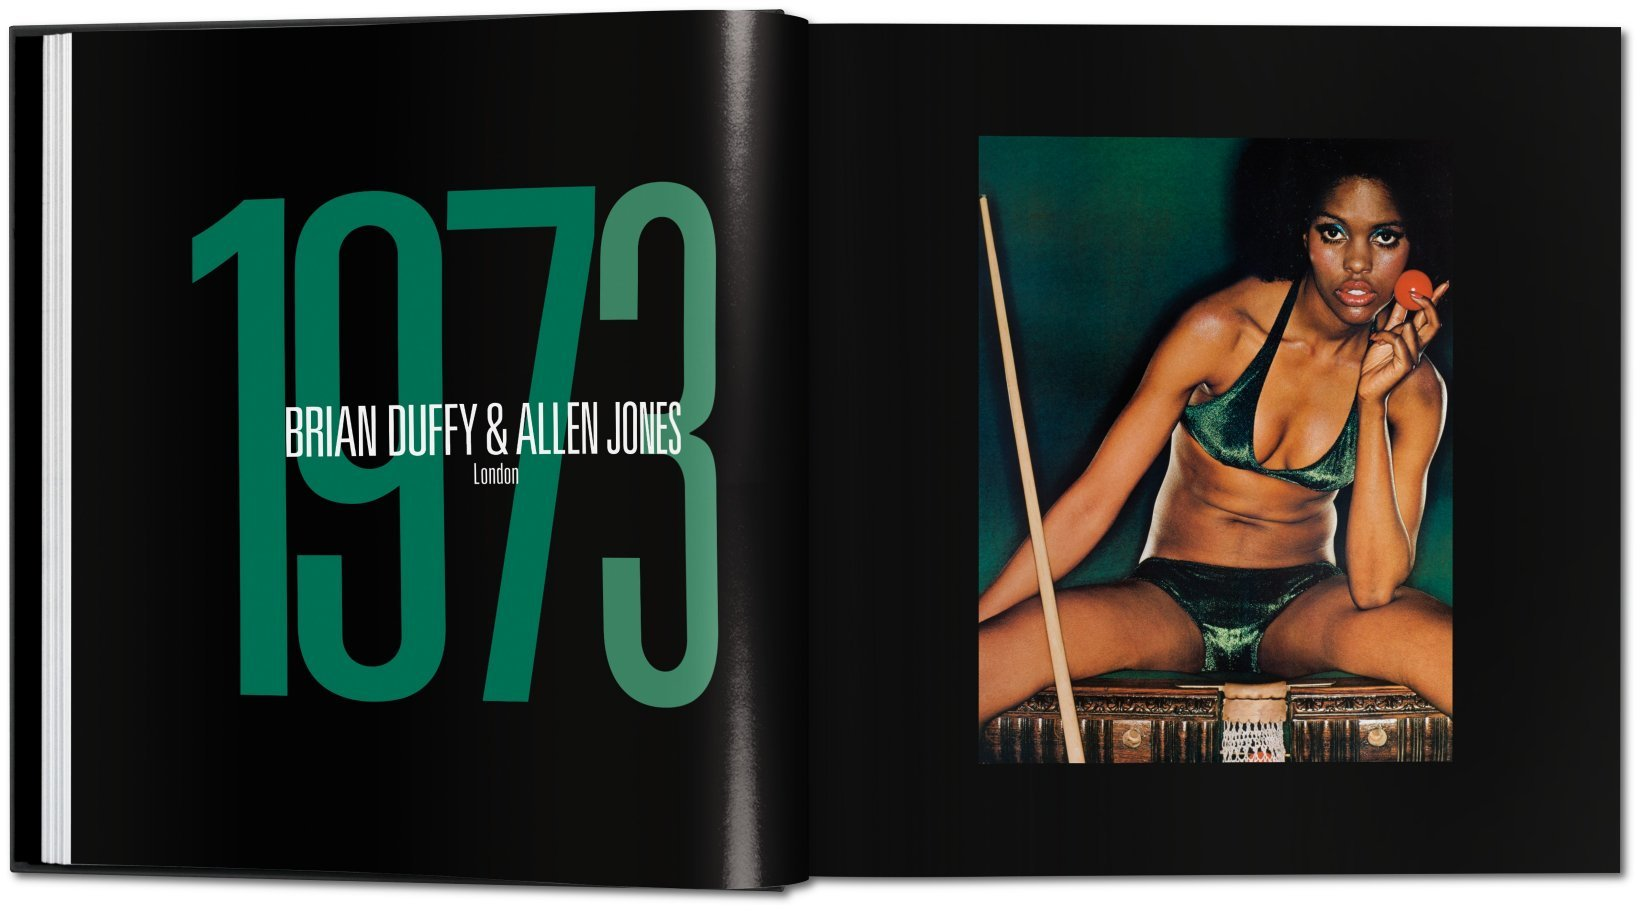 Pirelli - The Calendar. 50 Years And More, published by Taschen